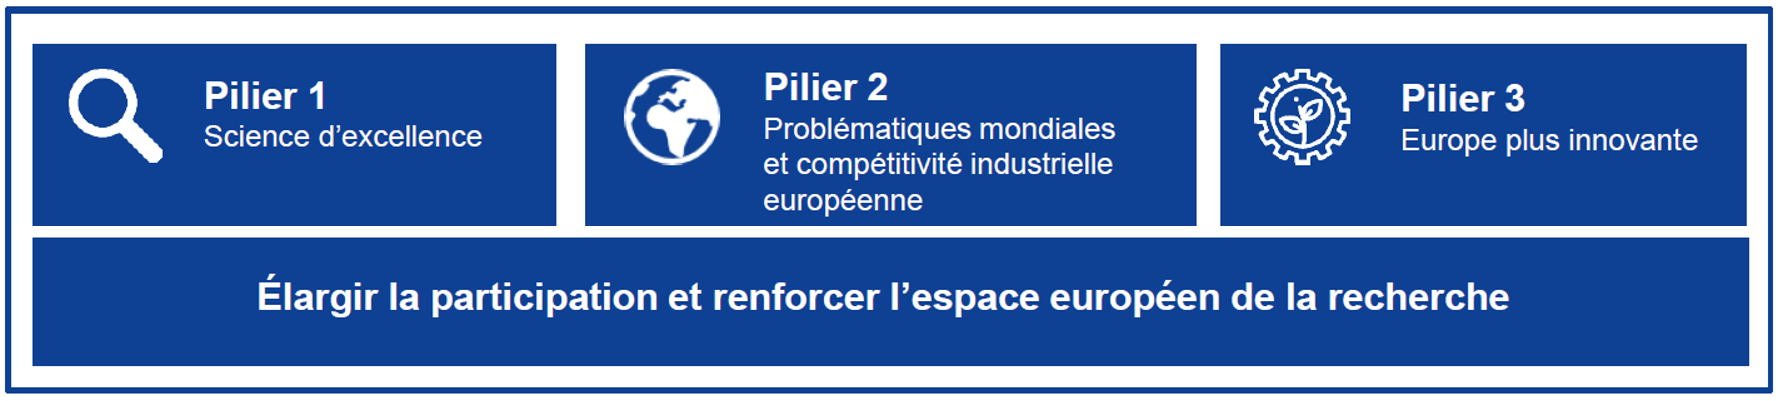 Les 3 piliers d'Horizon Europe